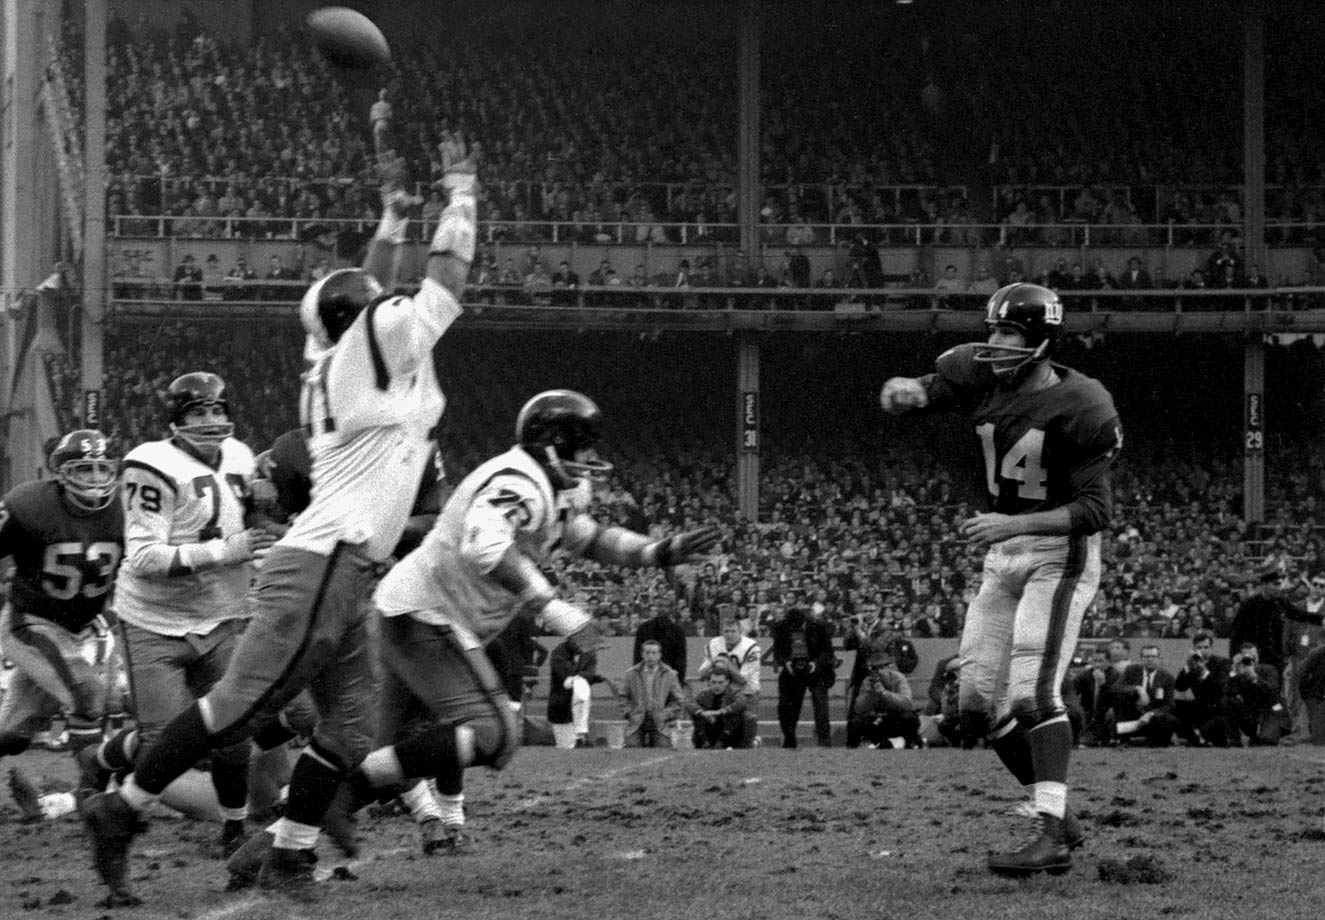 27 of 39 for 505 yards and seven touchdowns in a 49-34 win over the Washington Redskins at Yankee Stadium in the Bronx, N.Y.